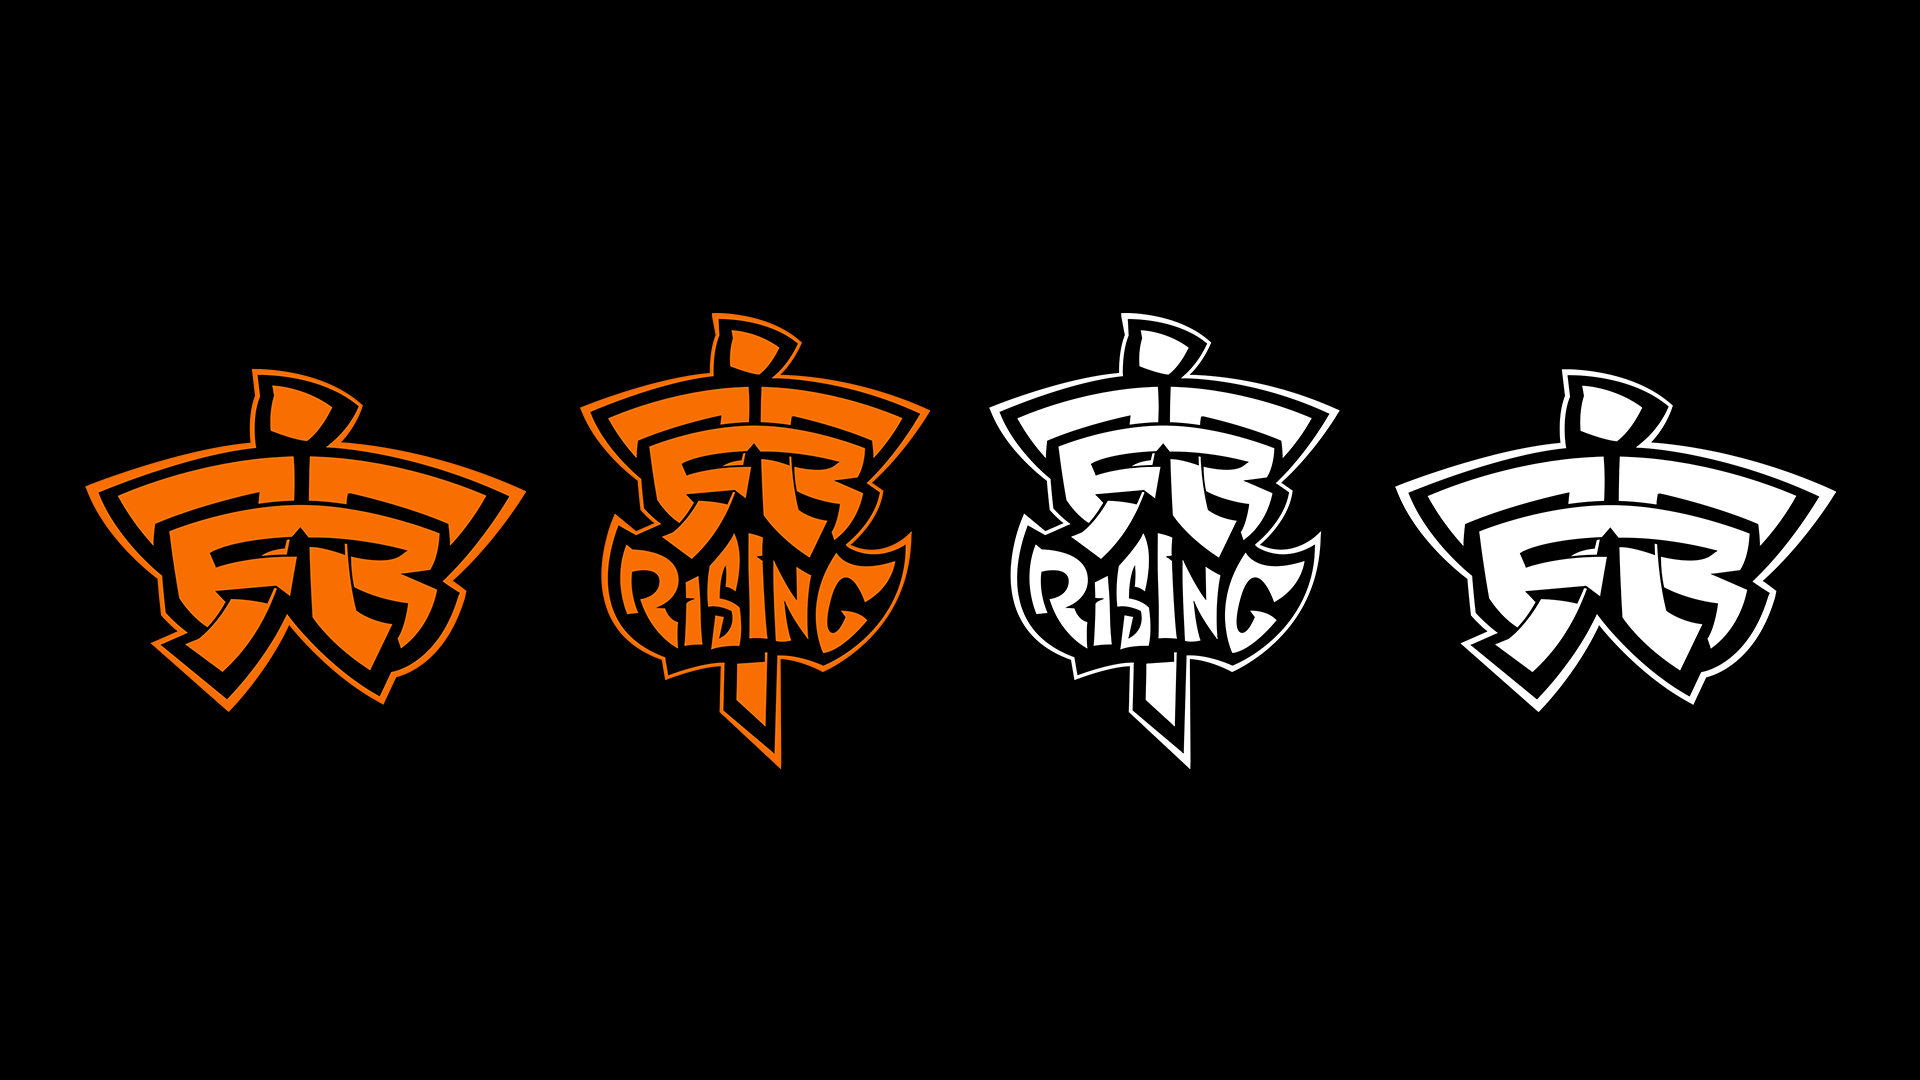 Logo oficial de Fnatic Rising. Fuente: https://fnatic.com/articles/lol-uk-introducing-fnatic-rising